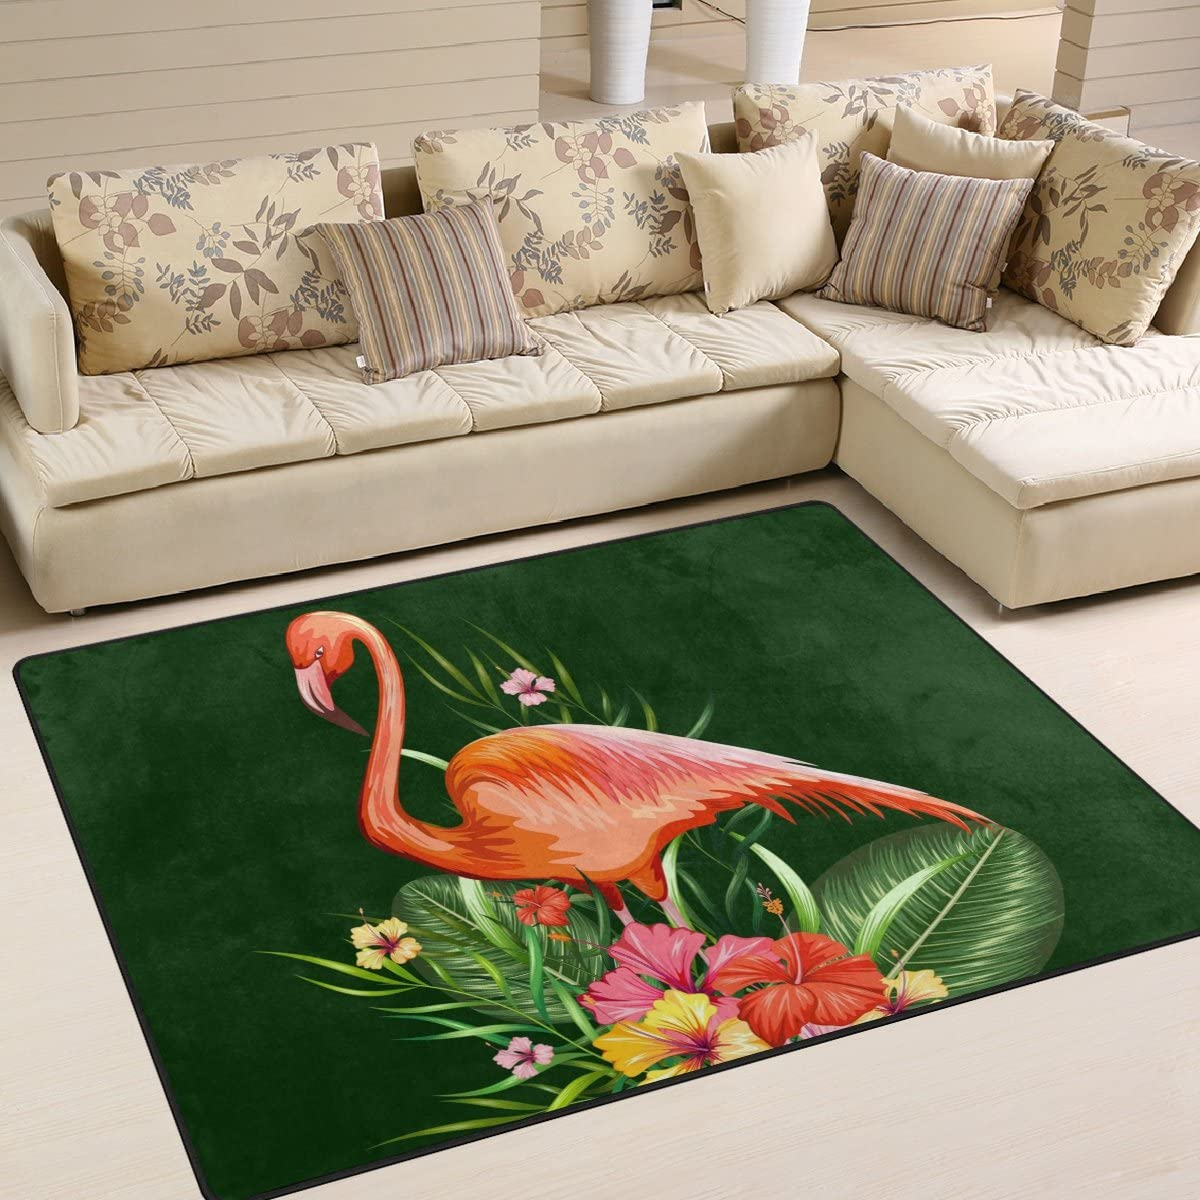 SAVSV Flamingo and Tropical Flower Pattern Printed Large Area Rugs,Lightweight Floor Carpet Use for Living Room Bedroom Home Deck Patio,6 8 x 4 10